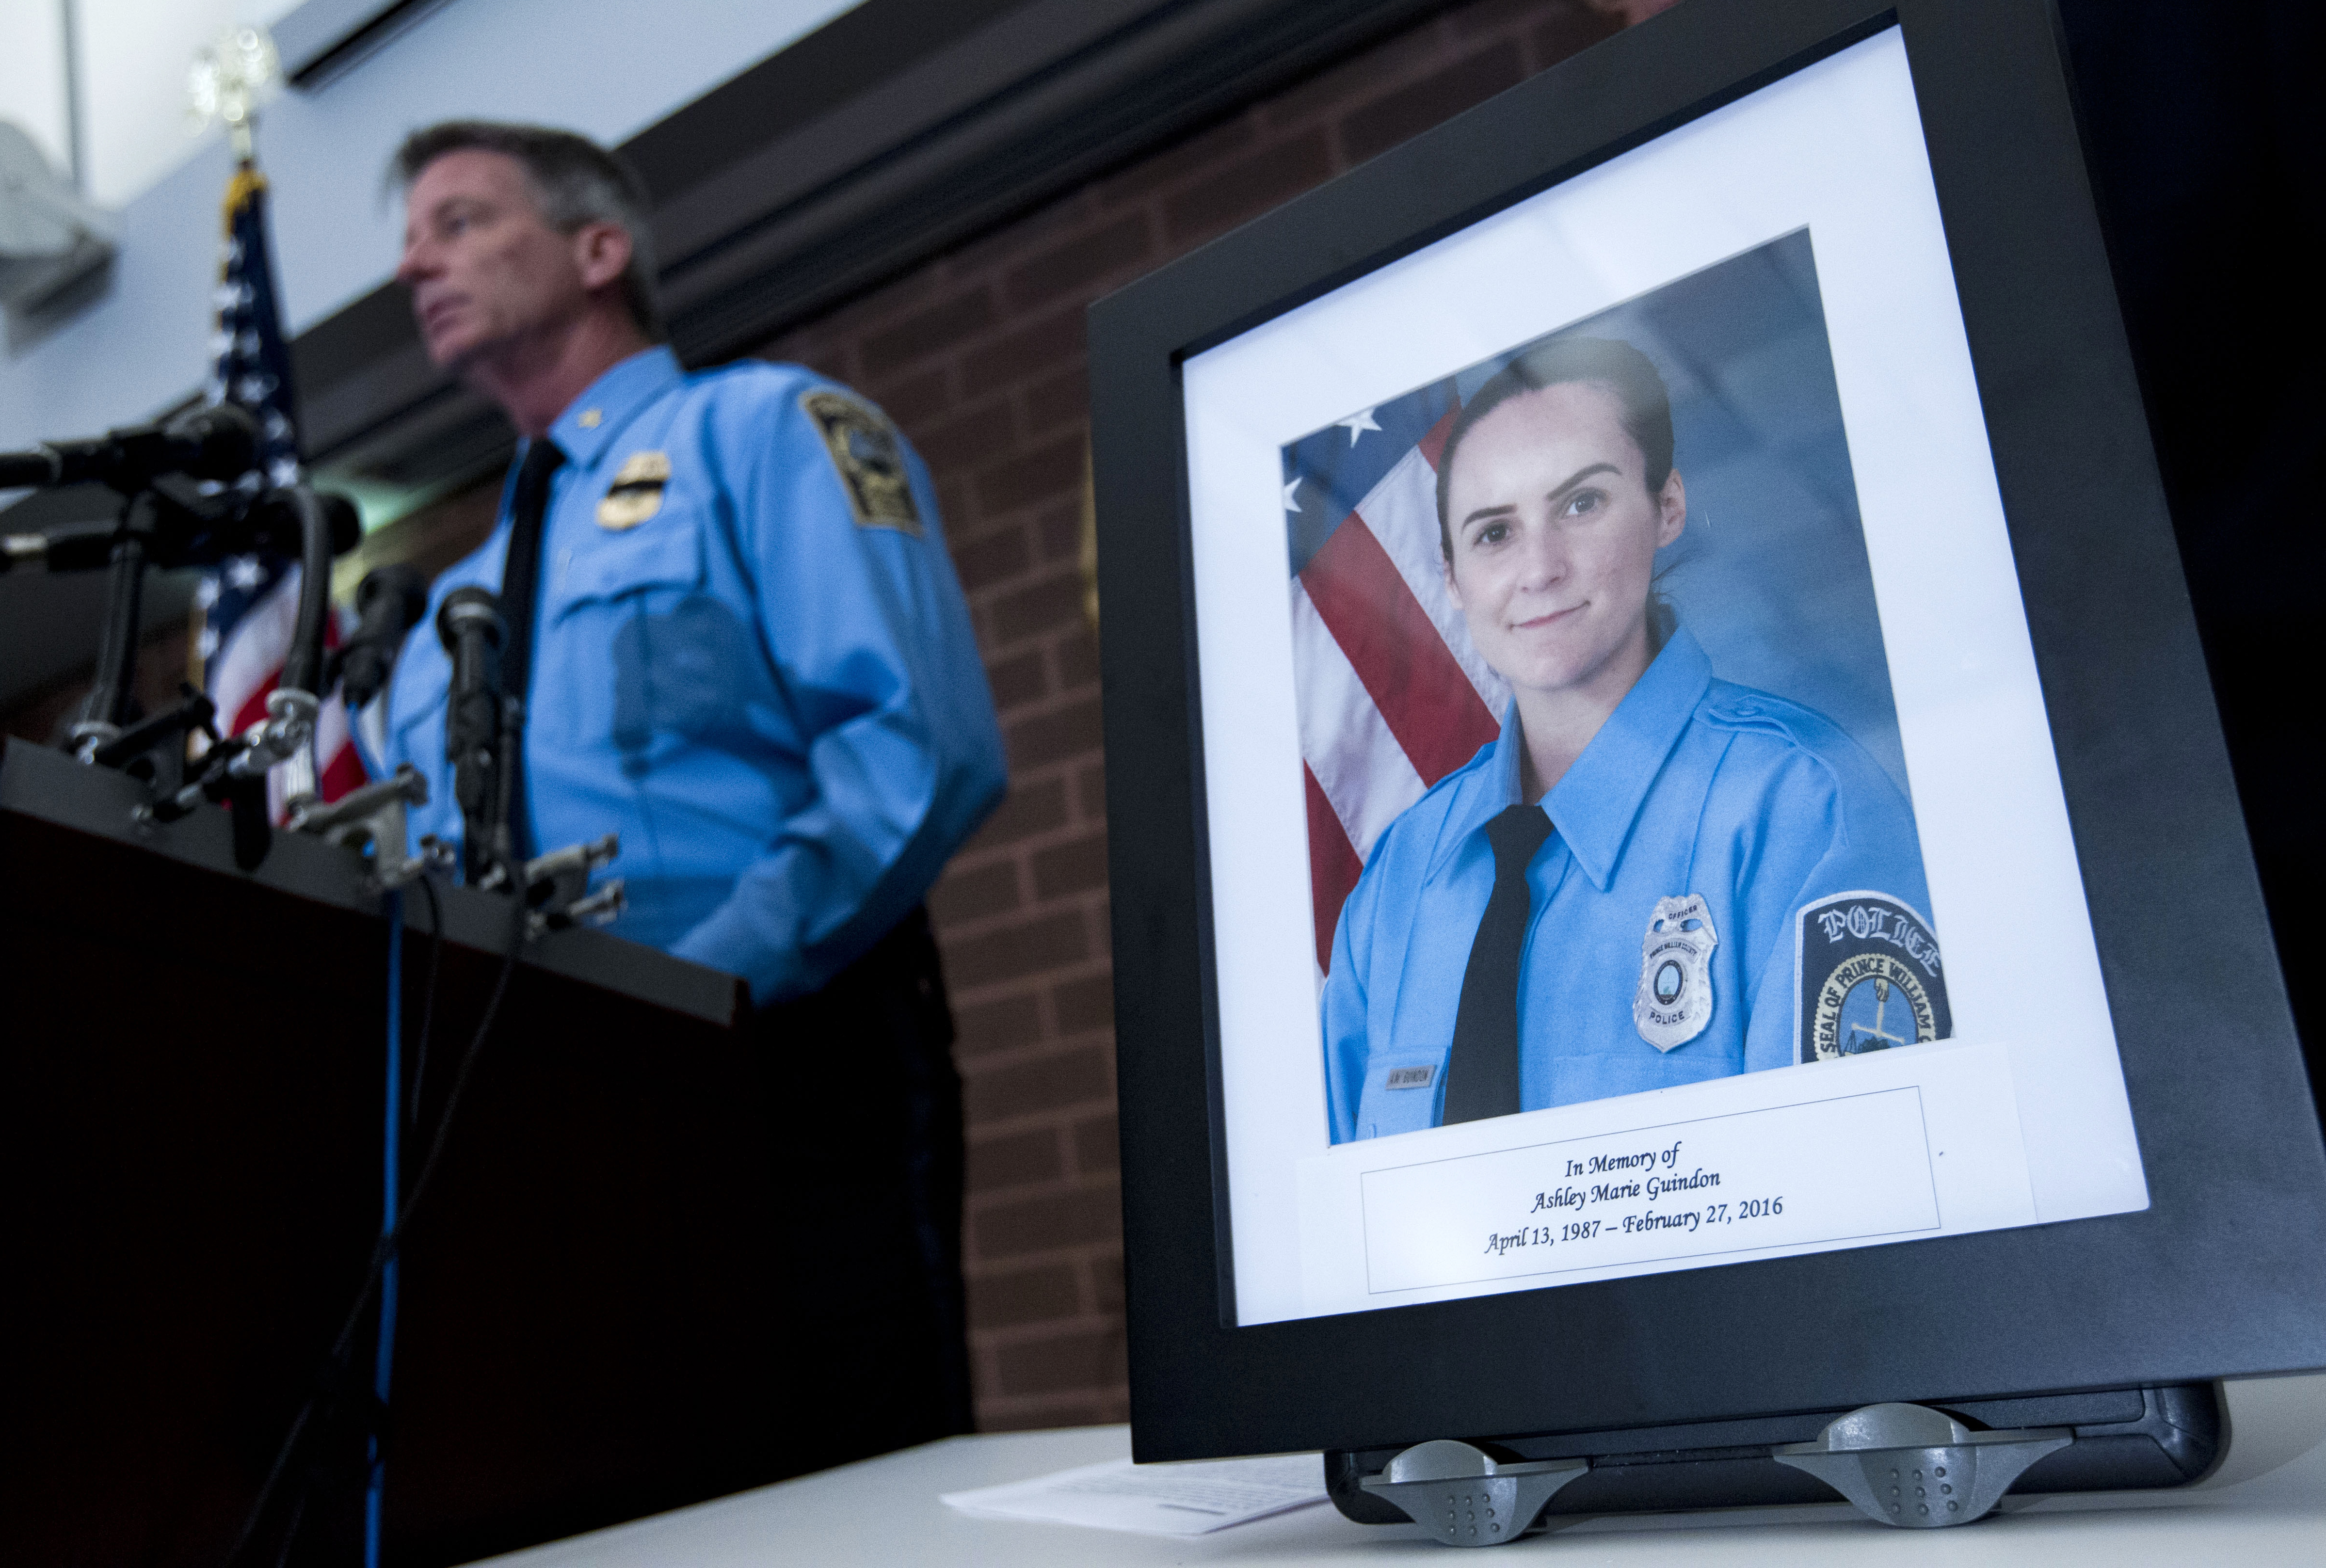 police officer shooting deaths on rise in 2016 amid anti law